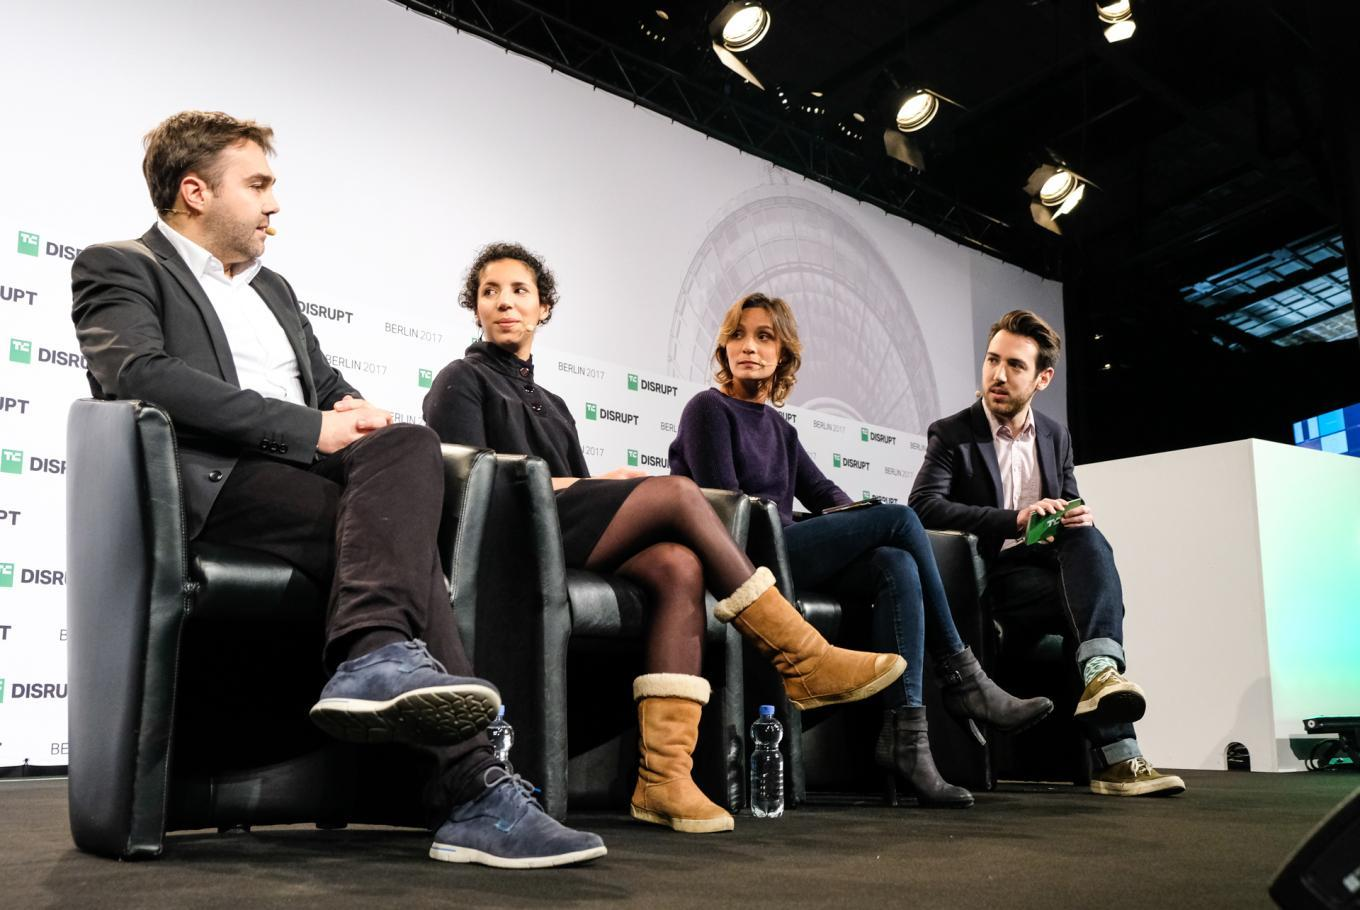 An expert panel discusses the rise of the French tech startup ecosystem